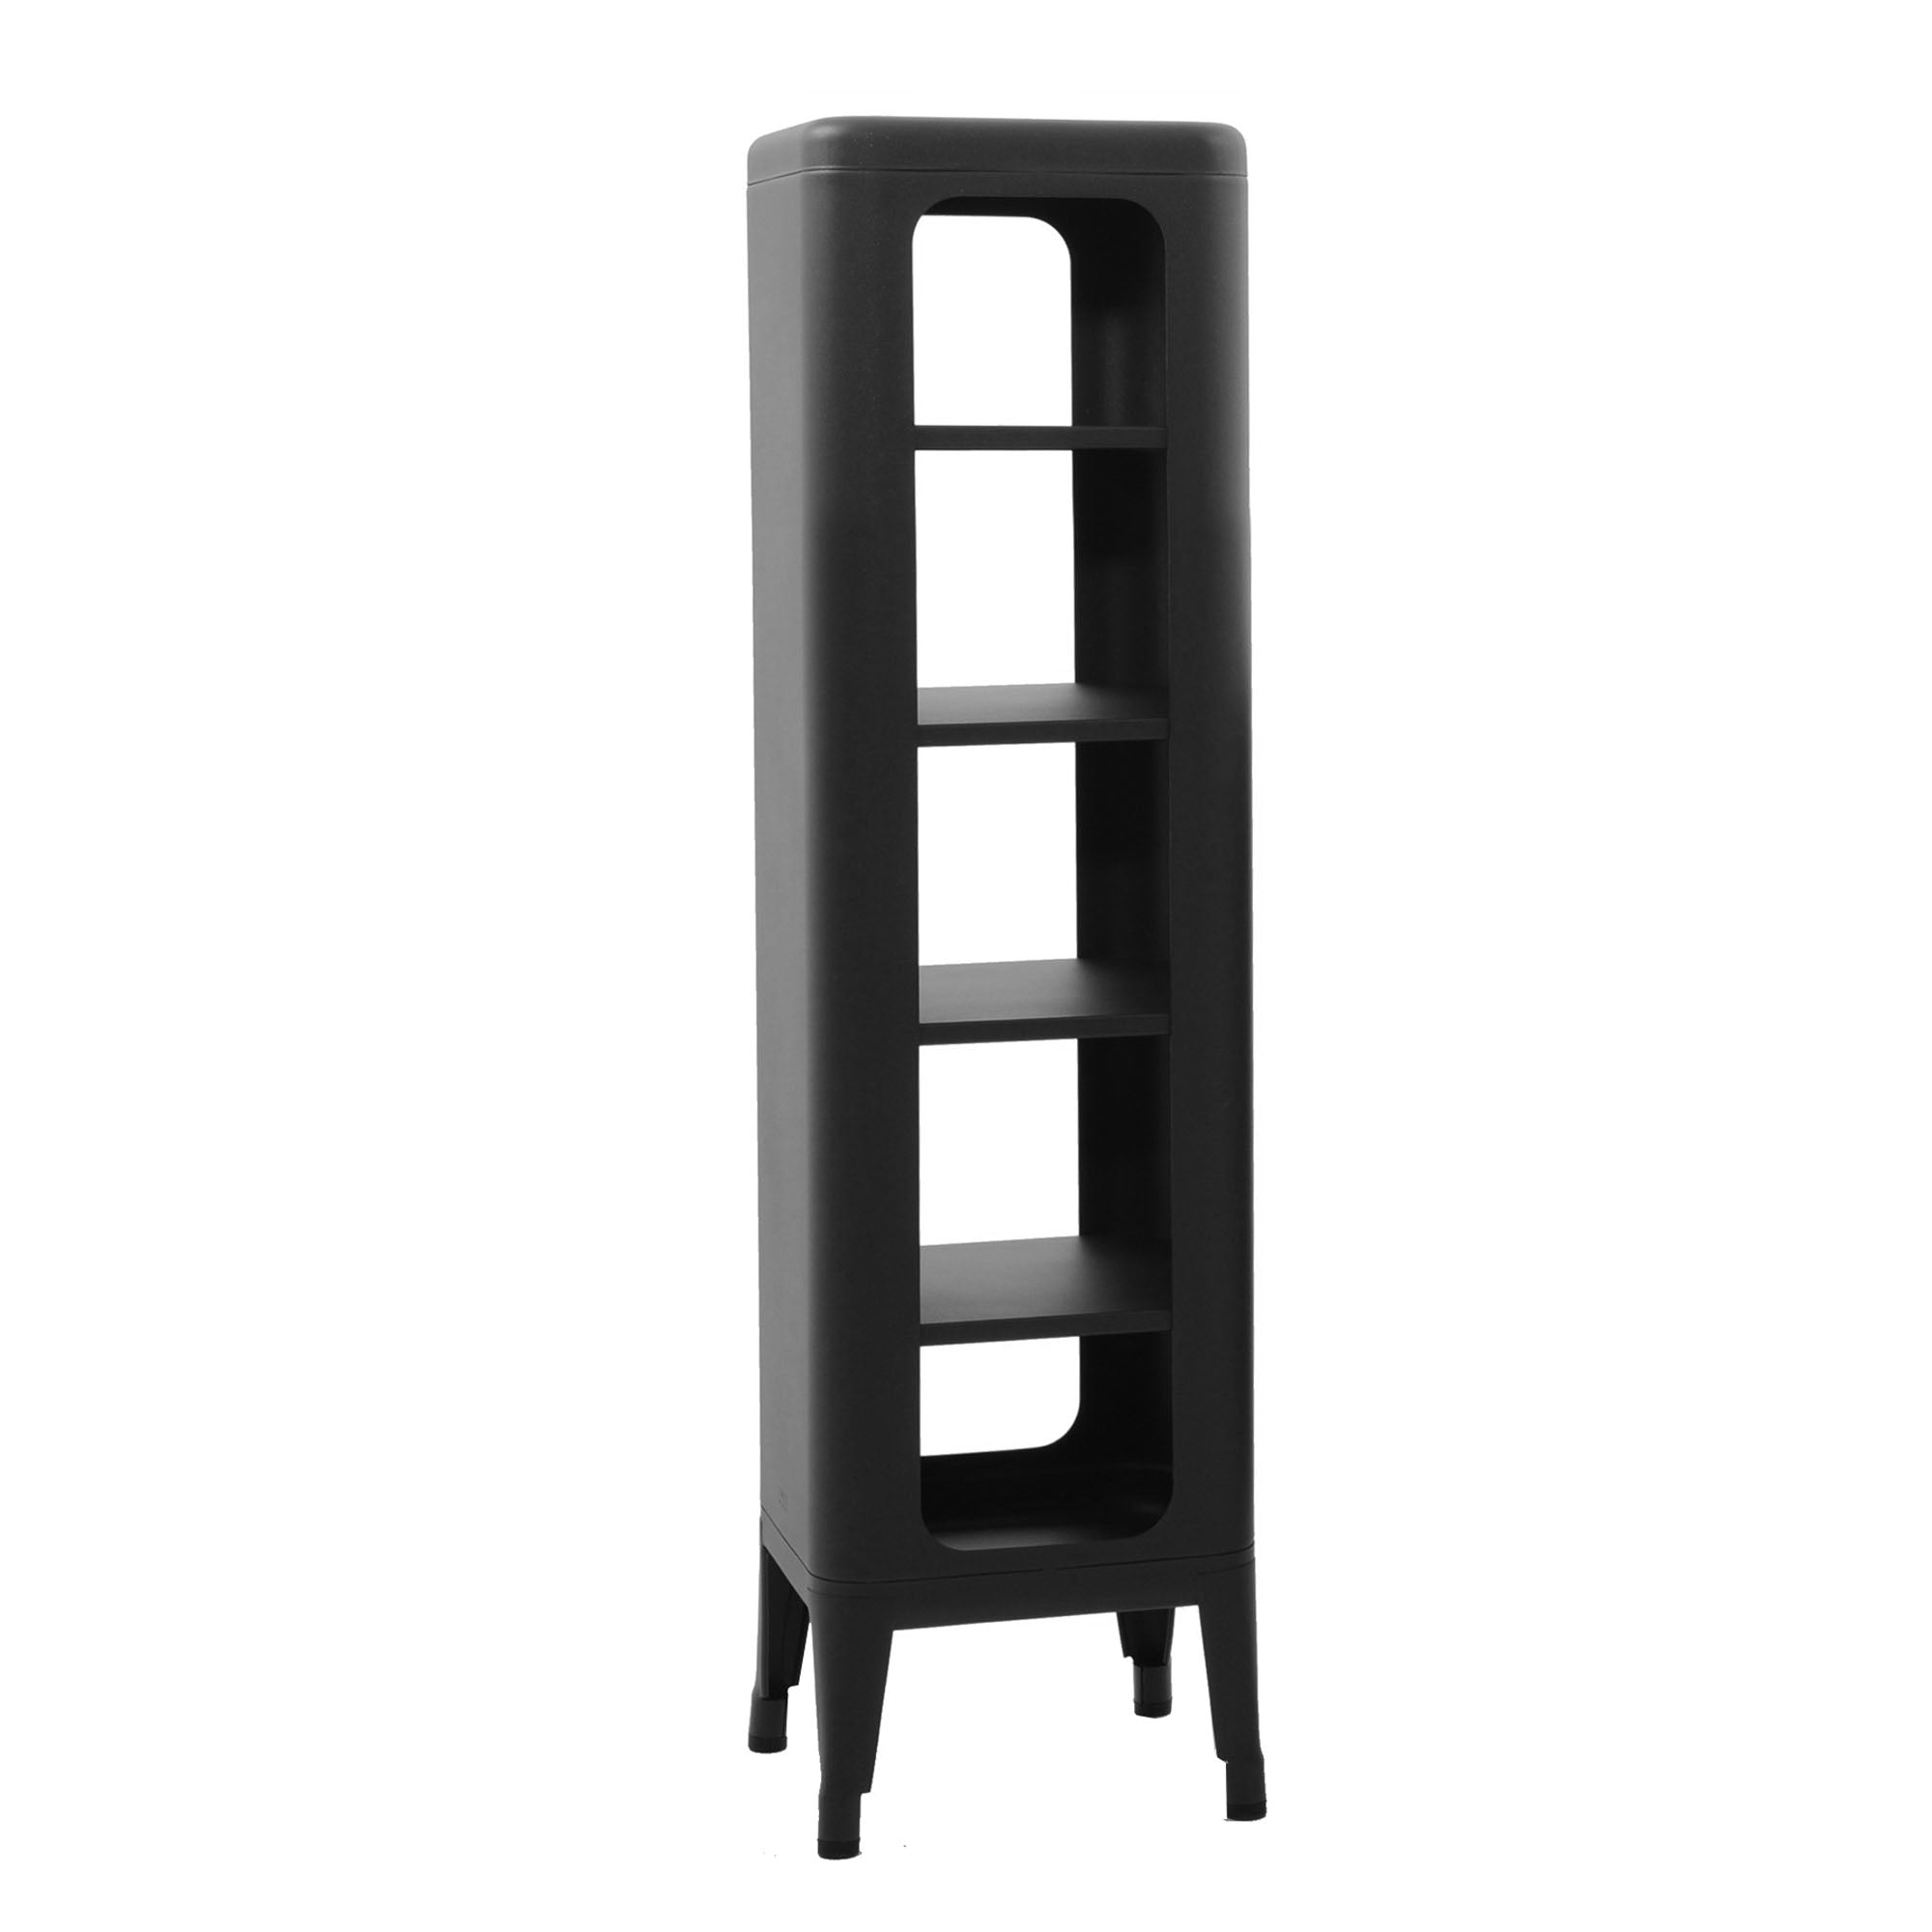 Industrial Bookshelf/bedside table BB-09C-B -  رف الكتب الصناعي / طاولة السرير - Shop Online Furniture and Home Decor Store in Dubai, UAE at ebarza